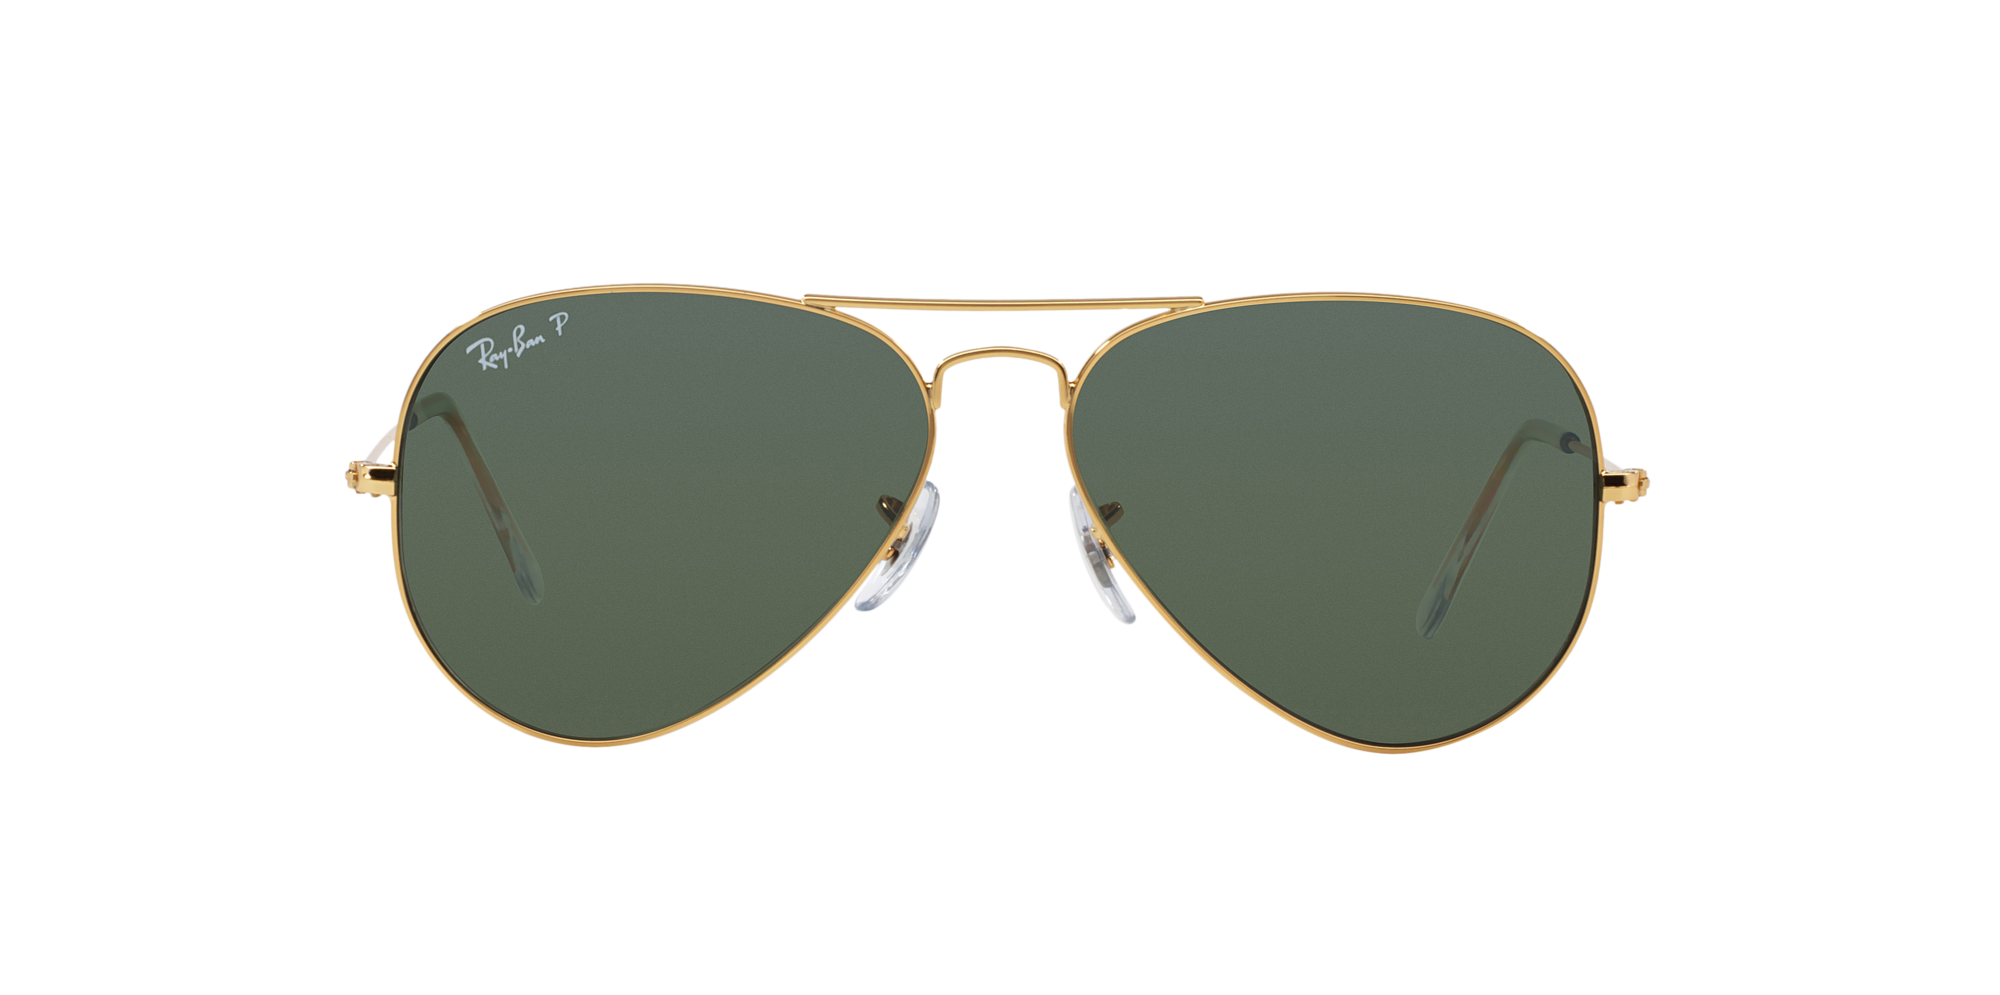 RAY-BAN RB 3025 001 58 AVIATOR POLARIZADA 62MM. gafas de sol RAY-BAN RB  3025 001 58 AVIATOR POLARIZADA e394a3daae